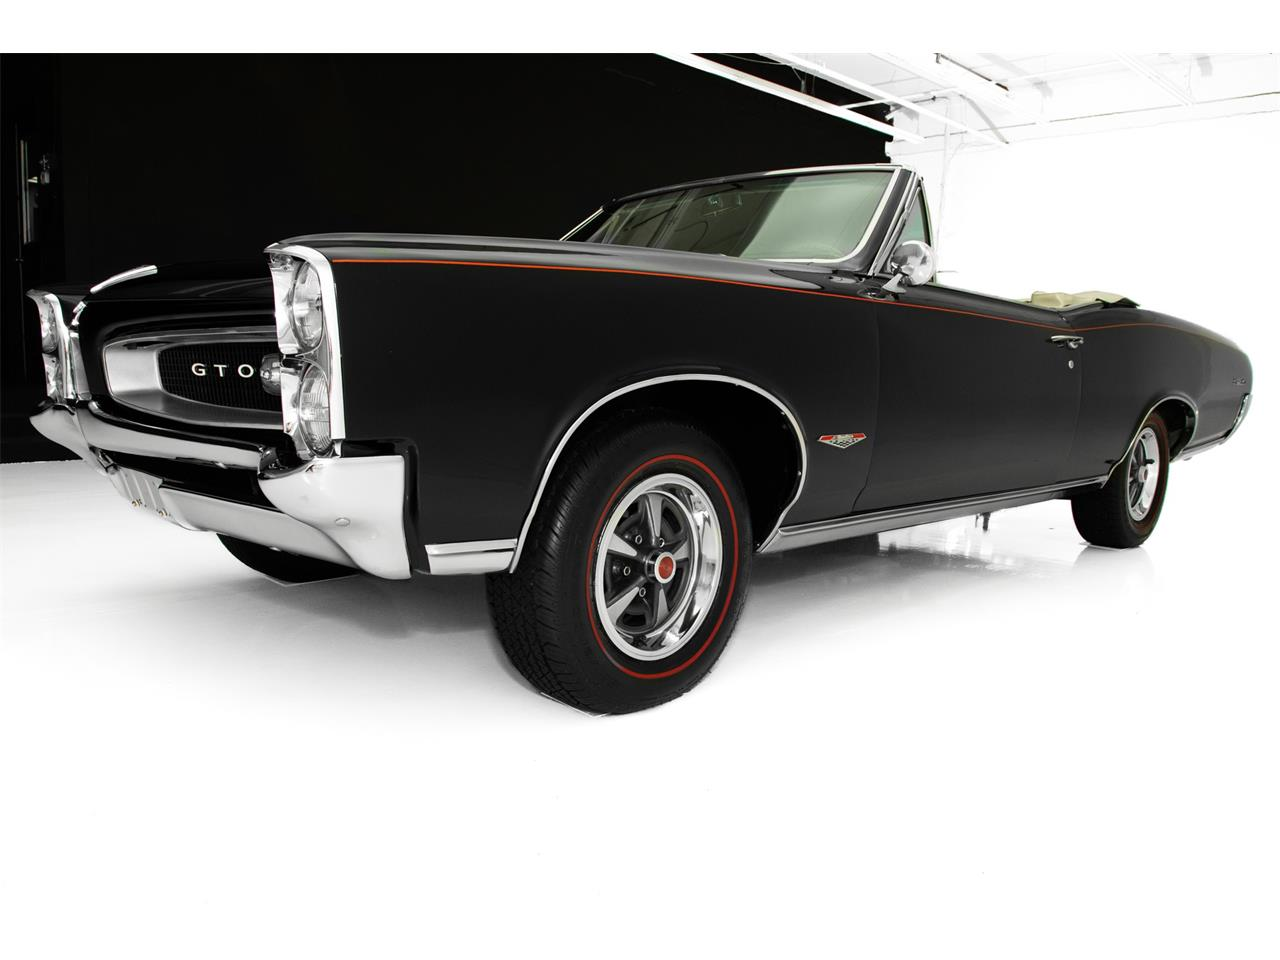 Large Picture of 1966 GTO - $62,900.00 - QKZ0